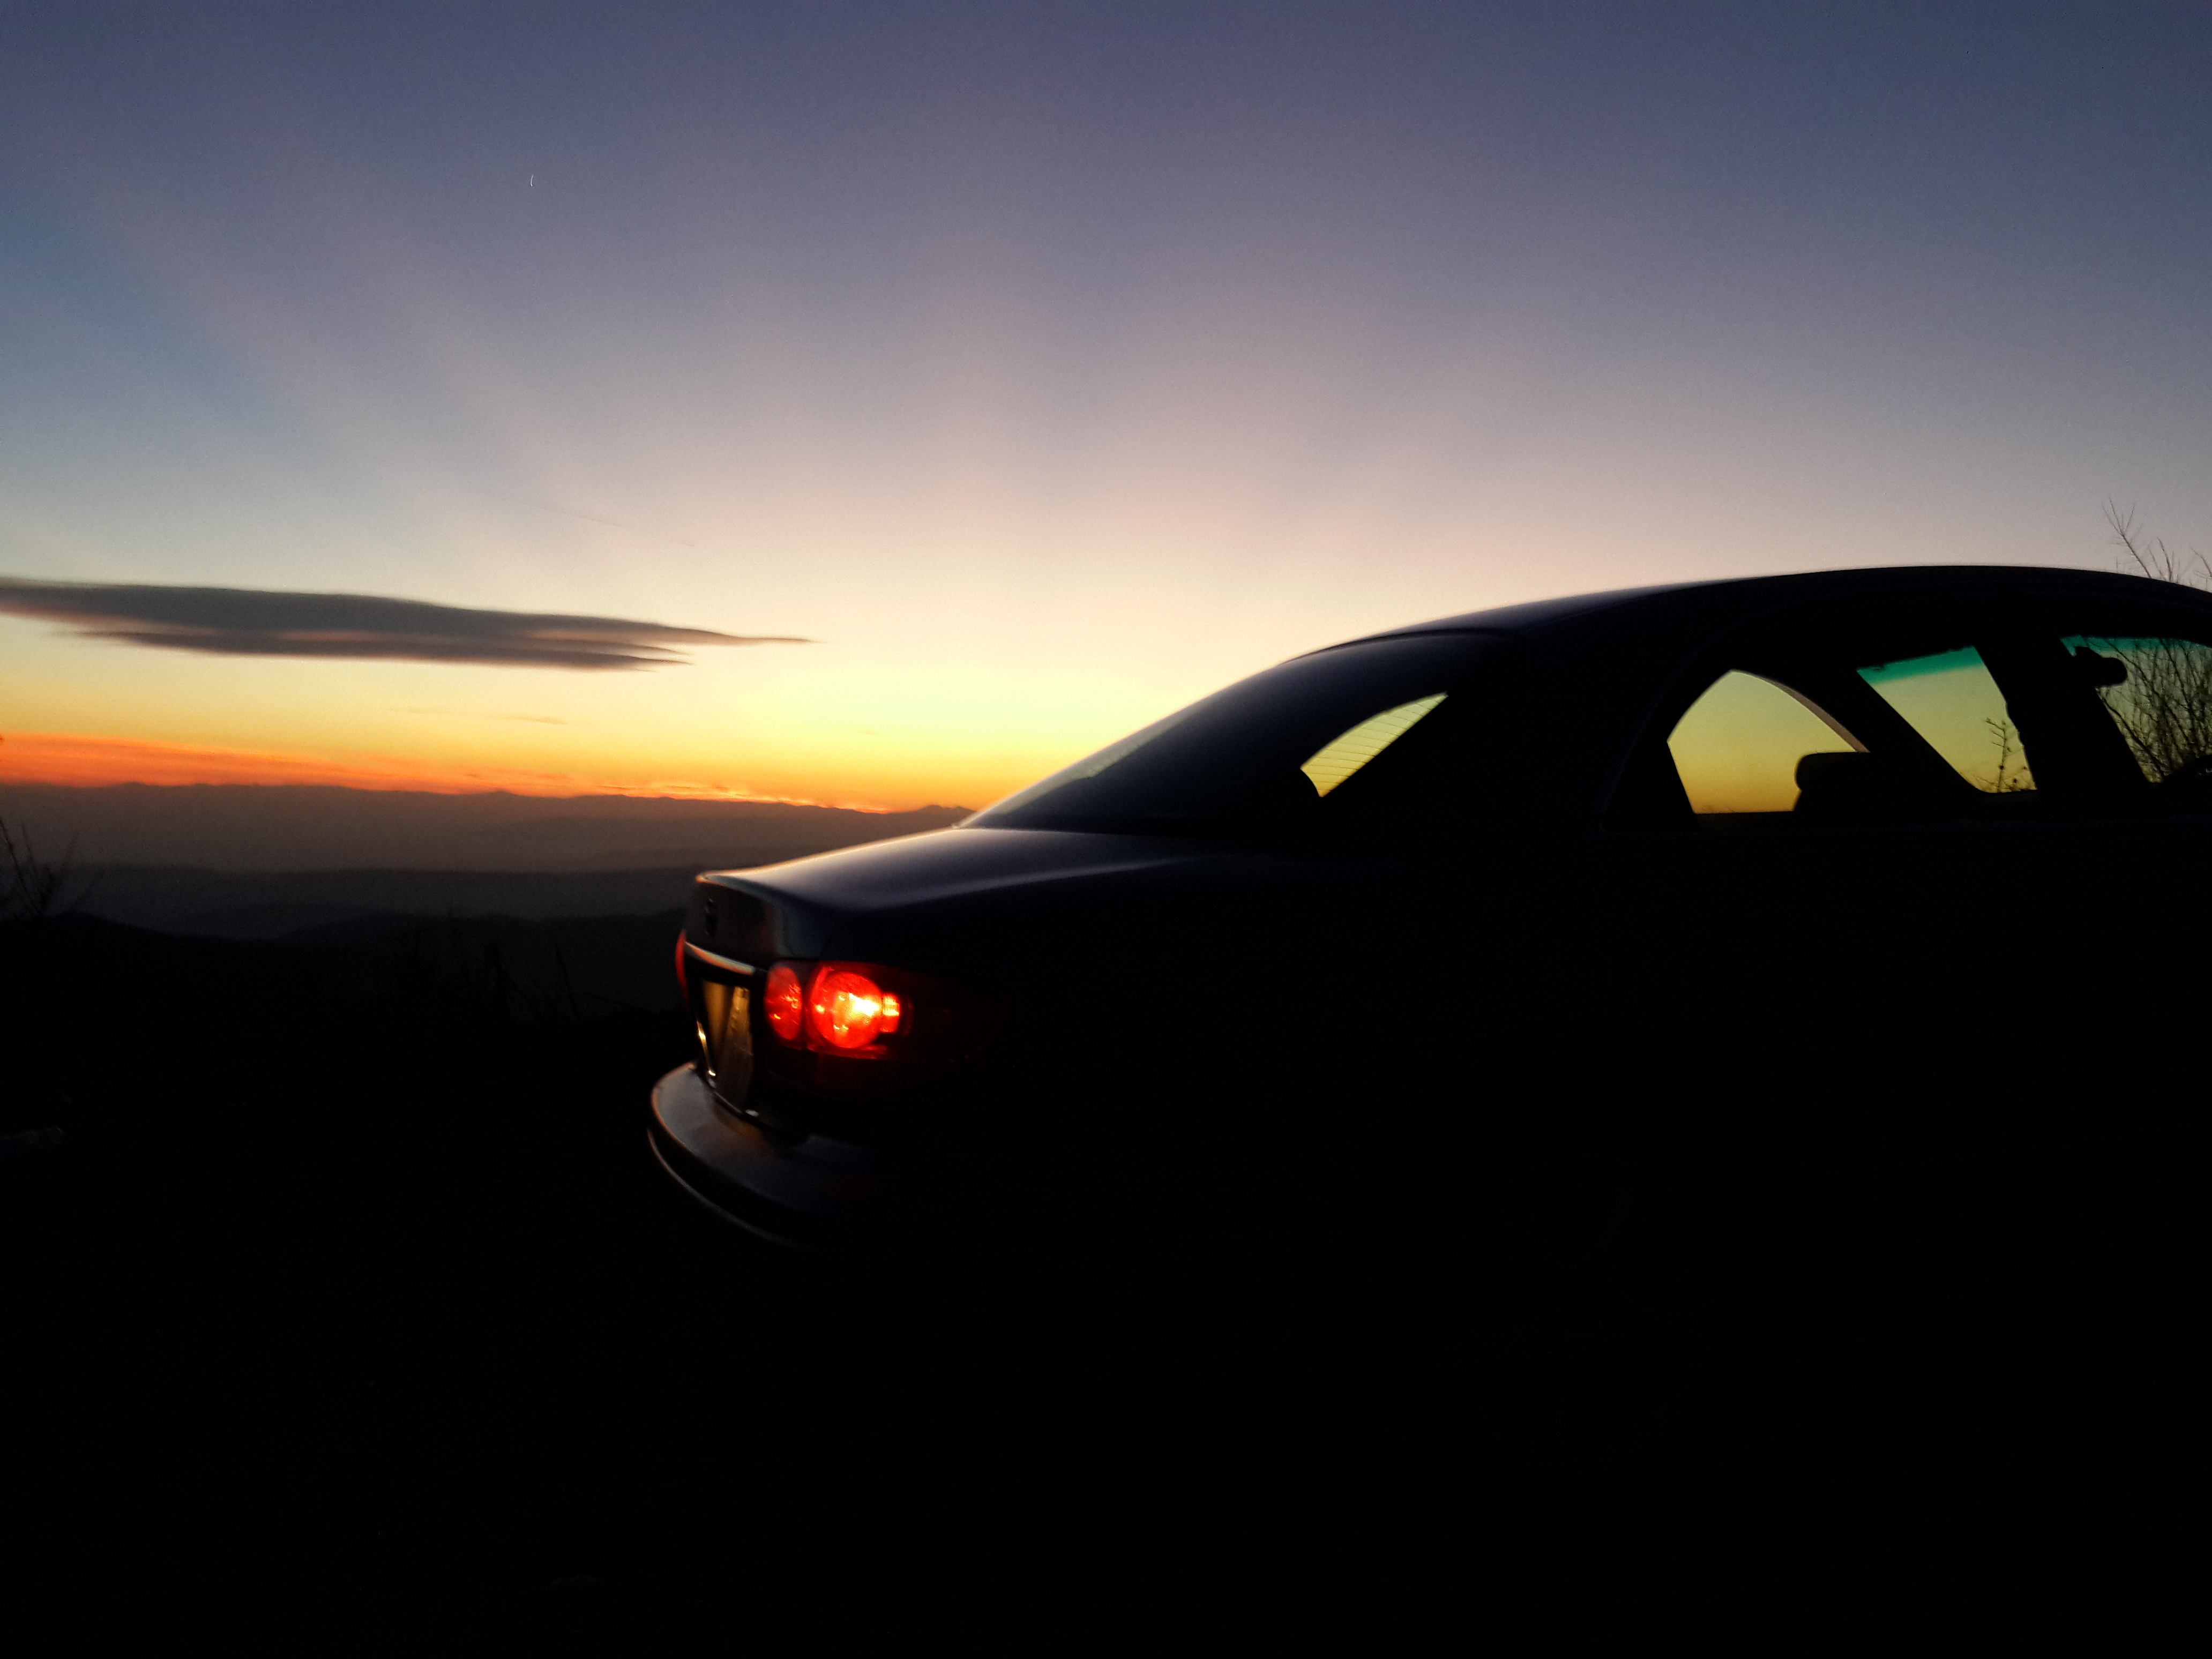 Mhamann3s profile in tbilisi cardomain sunset at 1600 masl with zoomzoom 19096003 altavistaventures Gallery